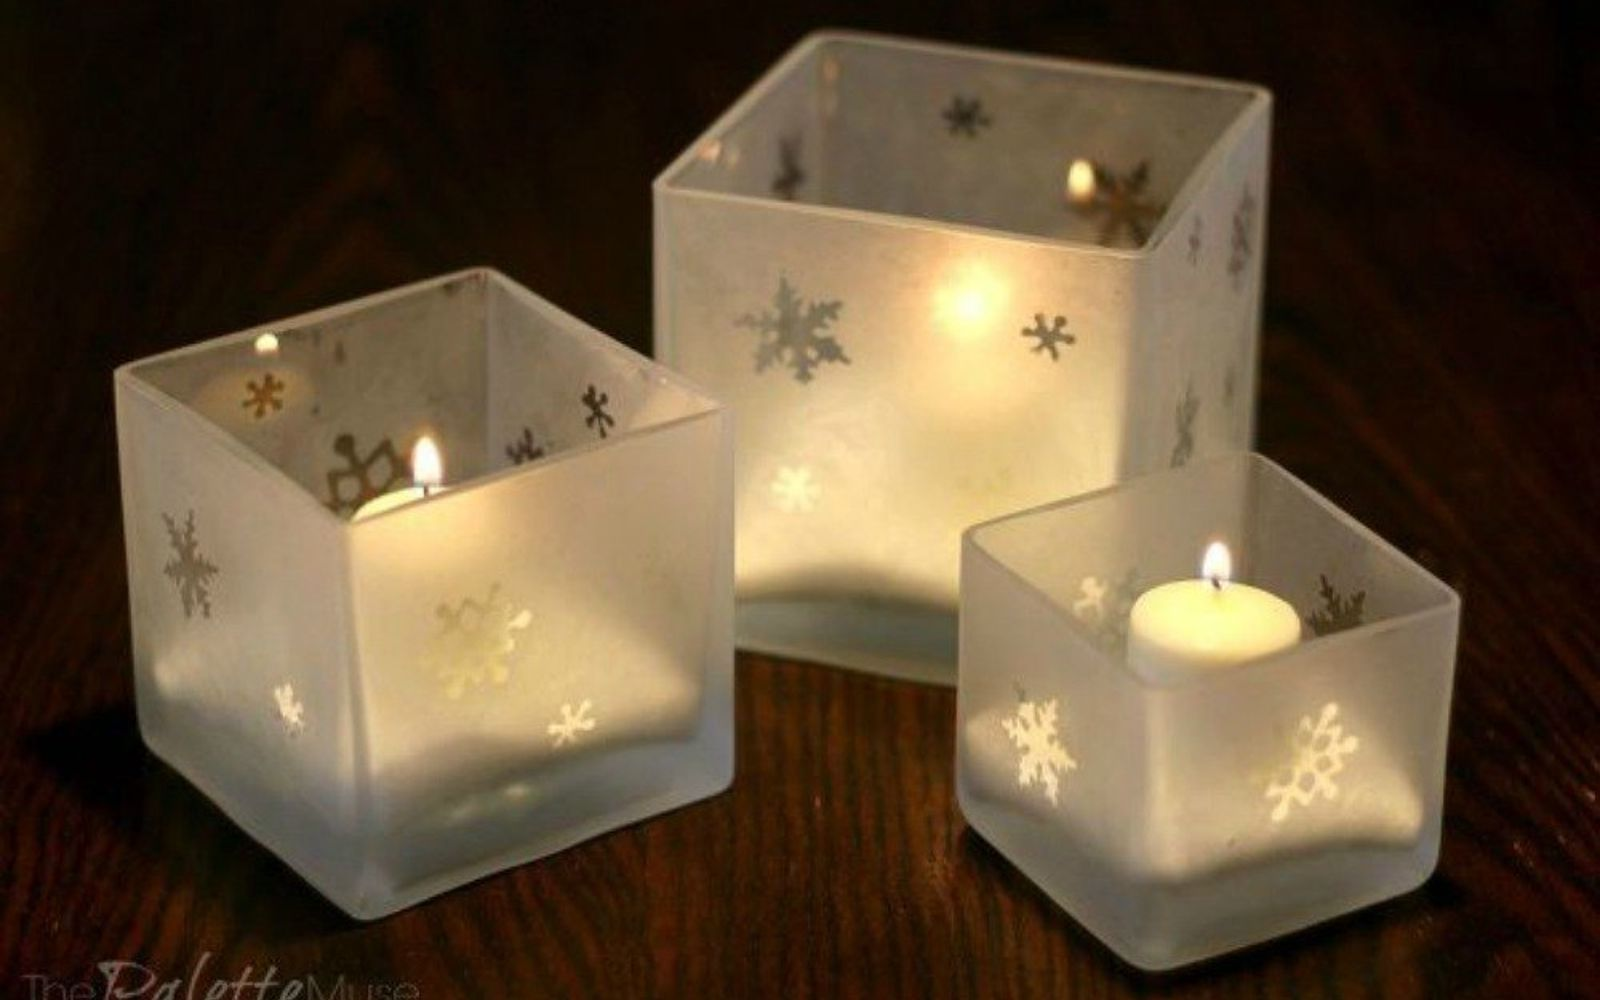 s 16 affordable ways to warm up your home this winter, home decor, Make your own etched glass candle holders